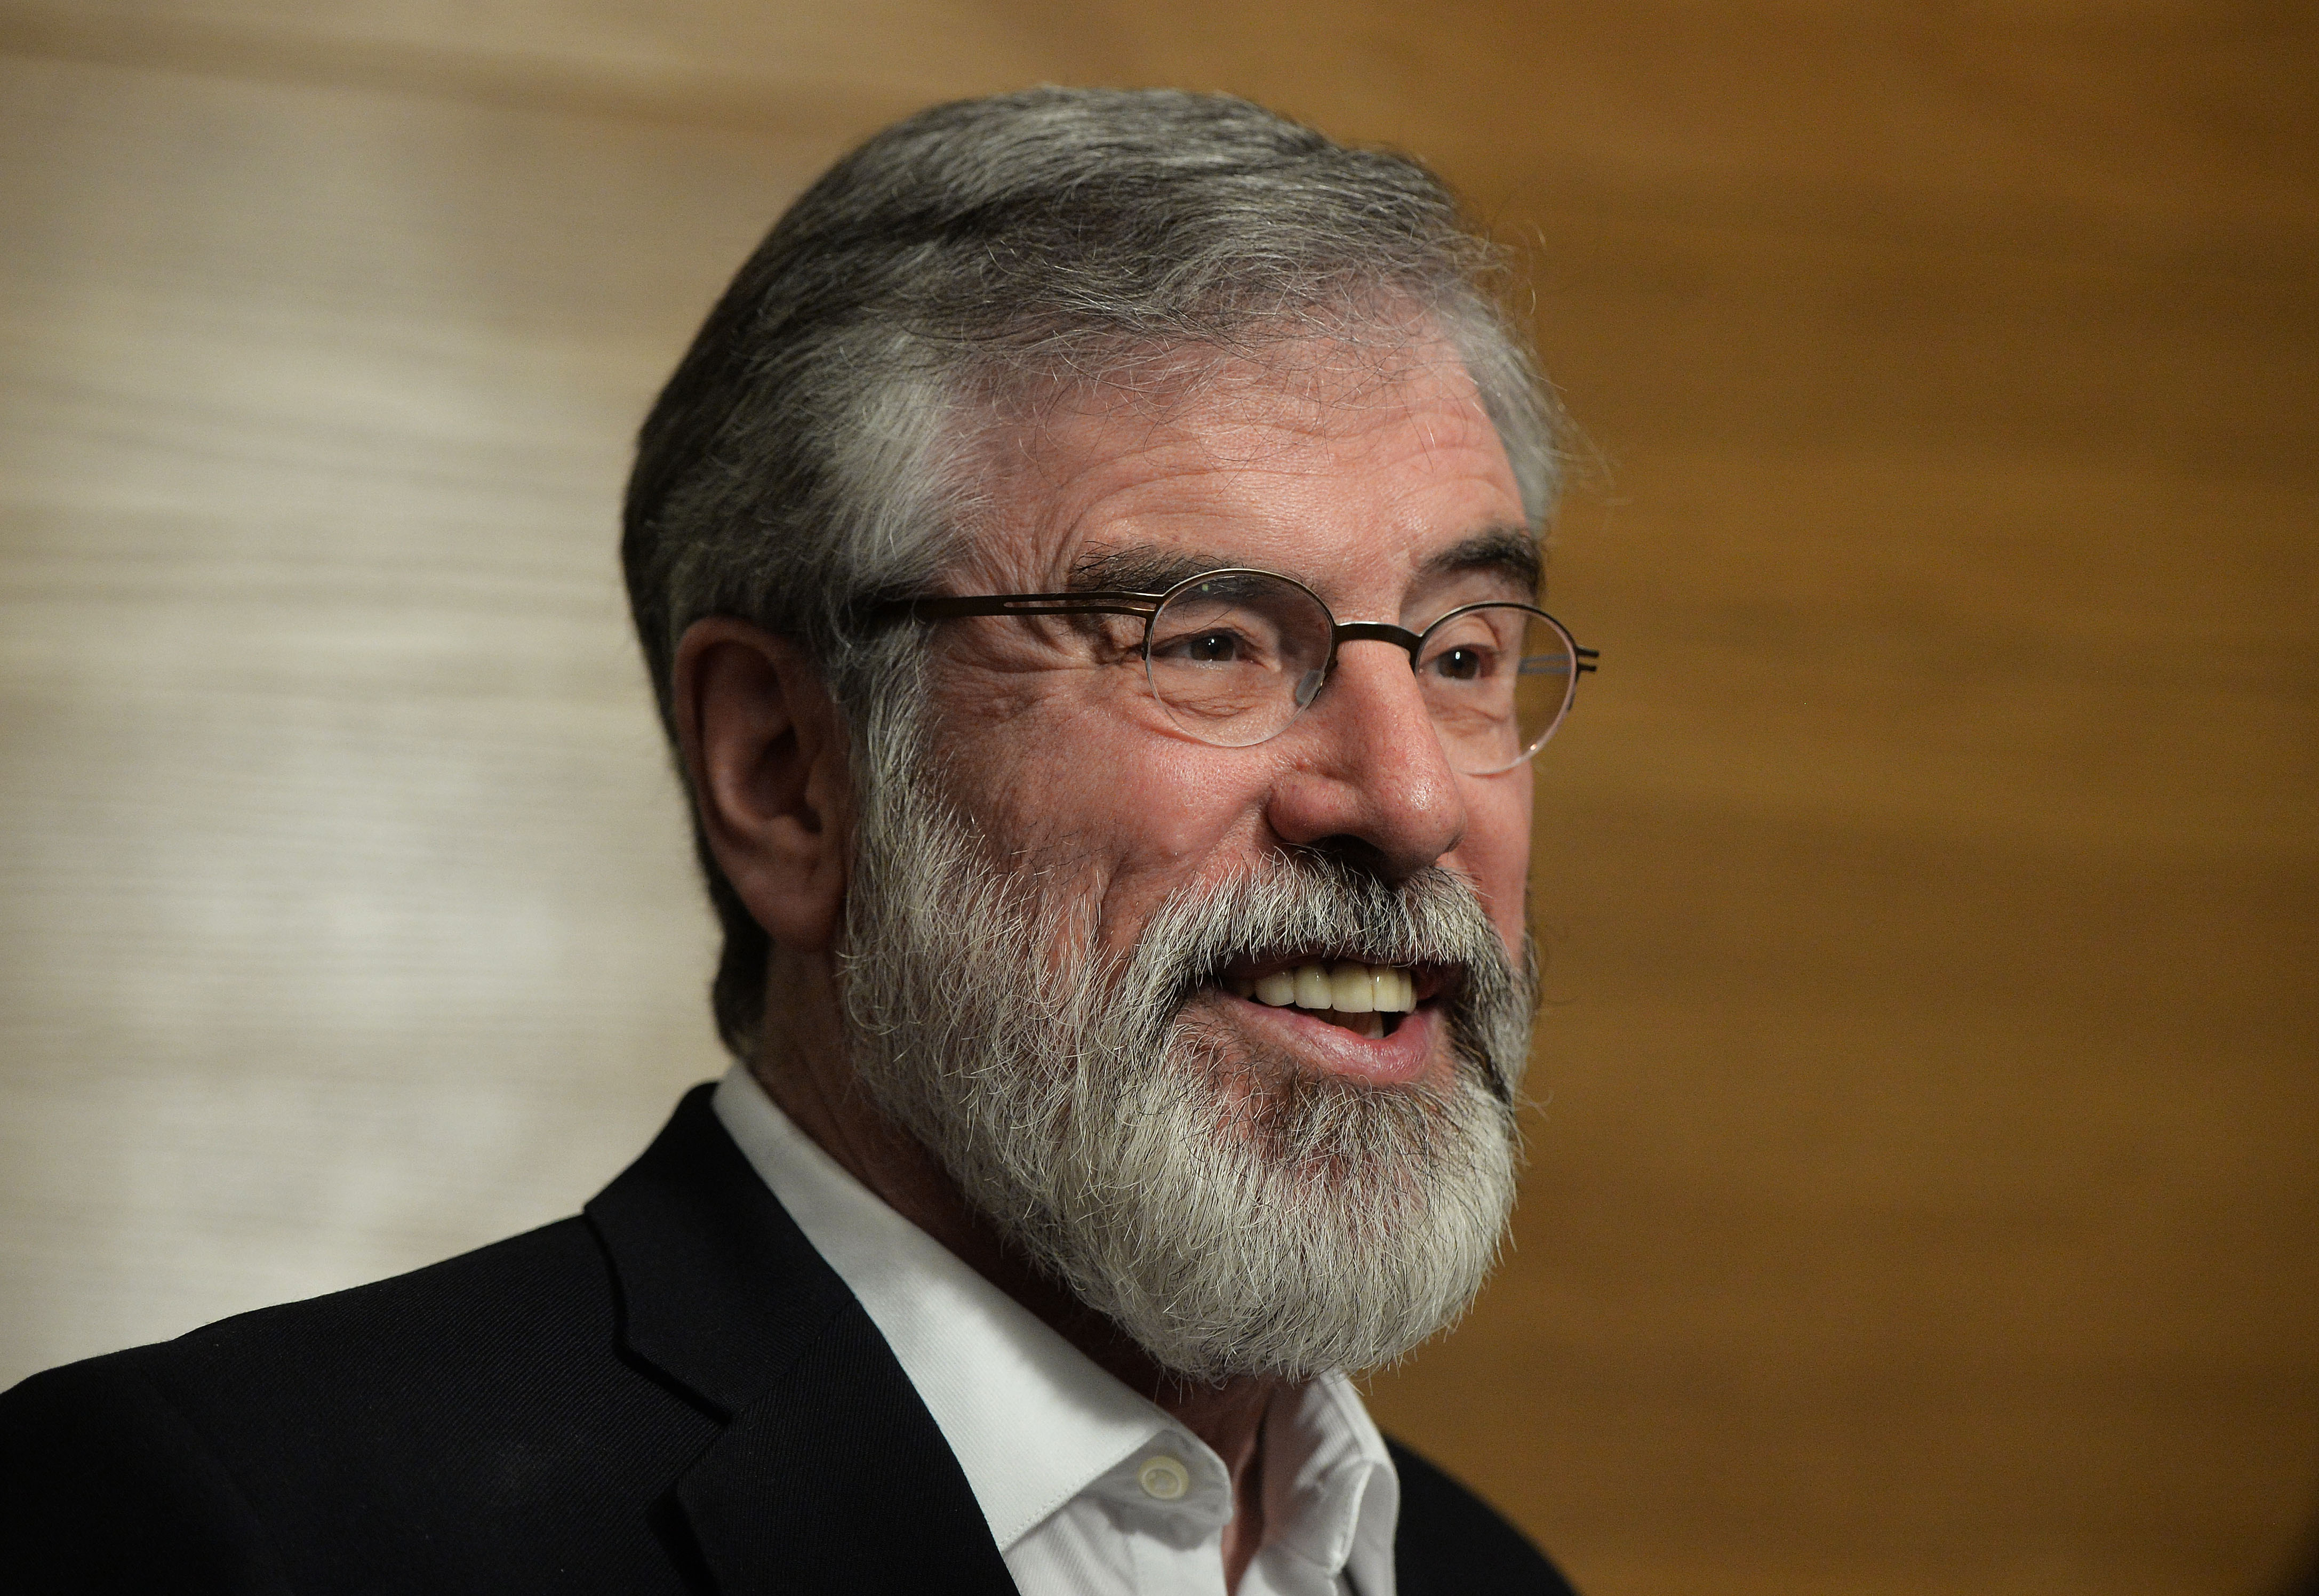 Sinn Fein's Gerry Adams after he was re-elected to government on February 28, 2016 in Dundalk, Ireland.